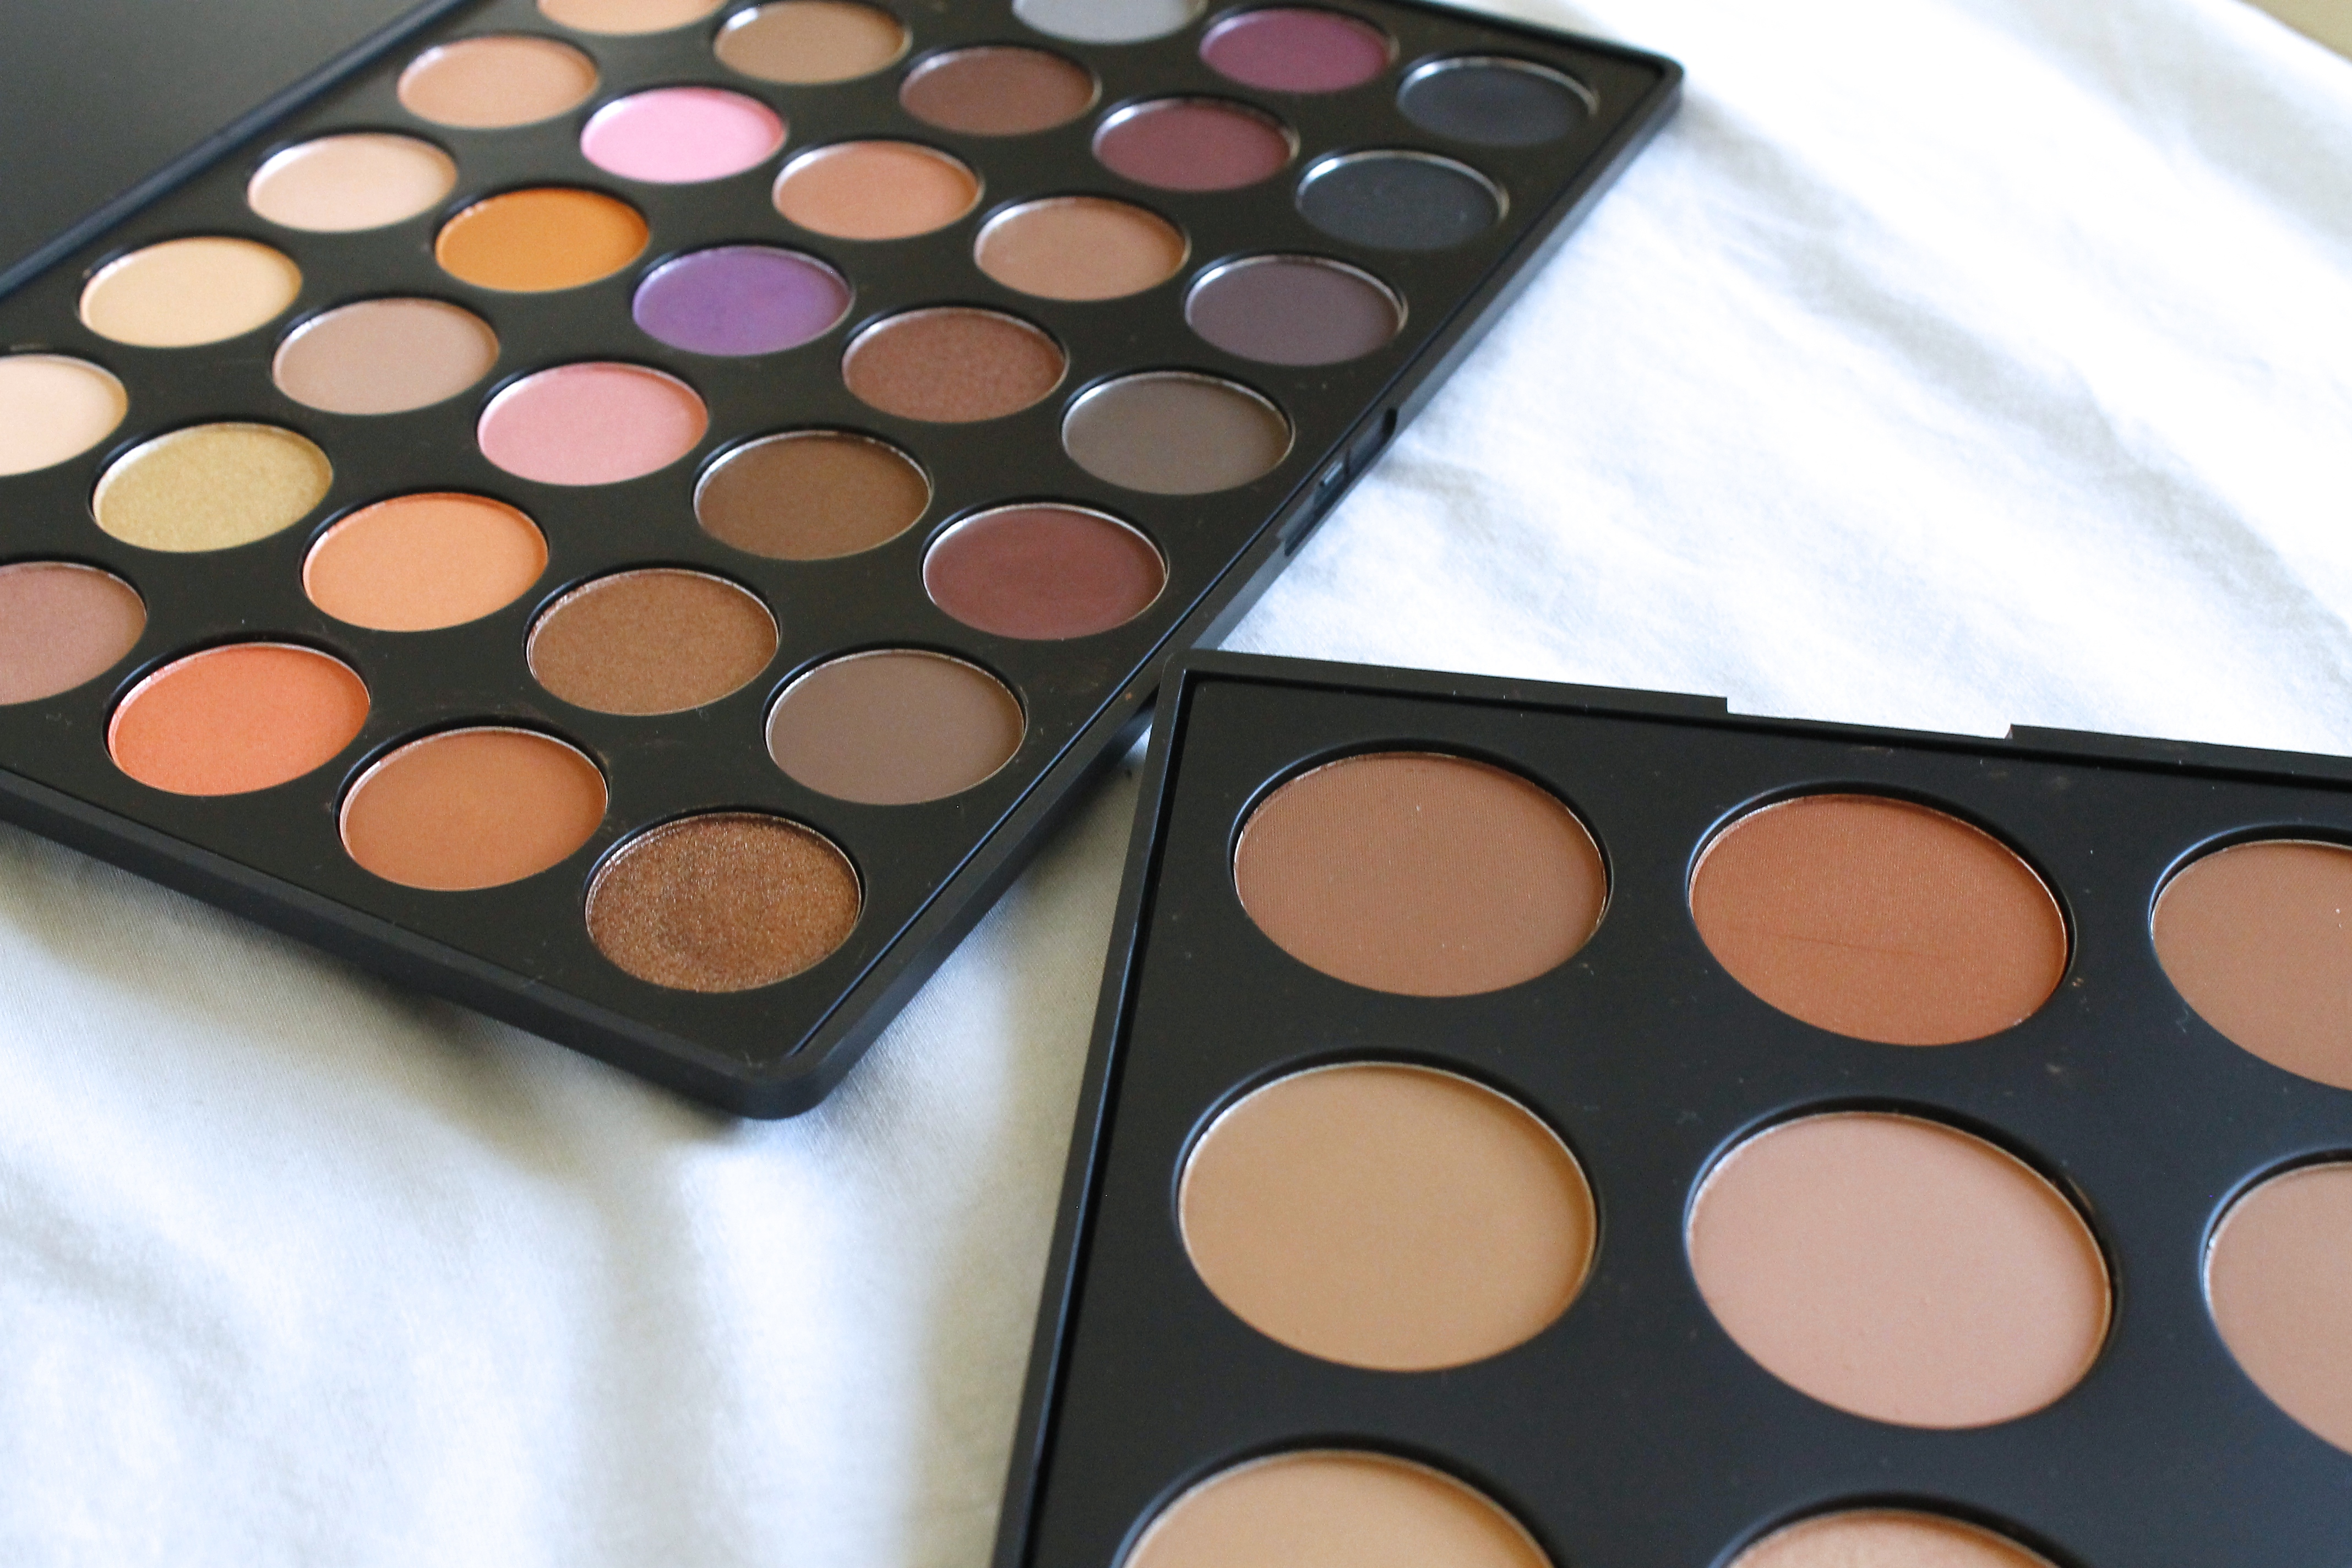 Morphe Brushes and Palettes Review